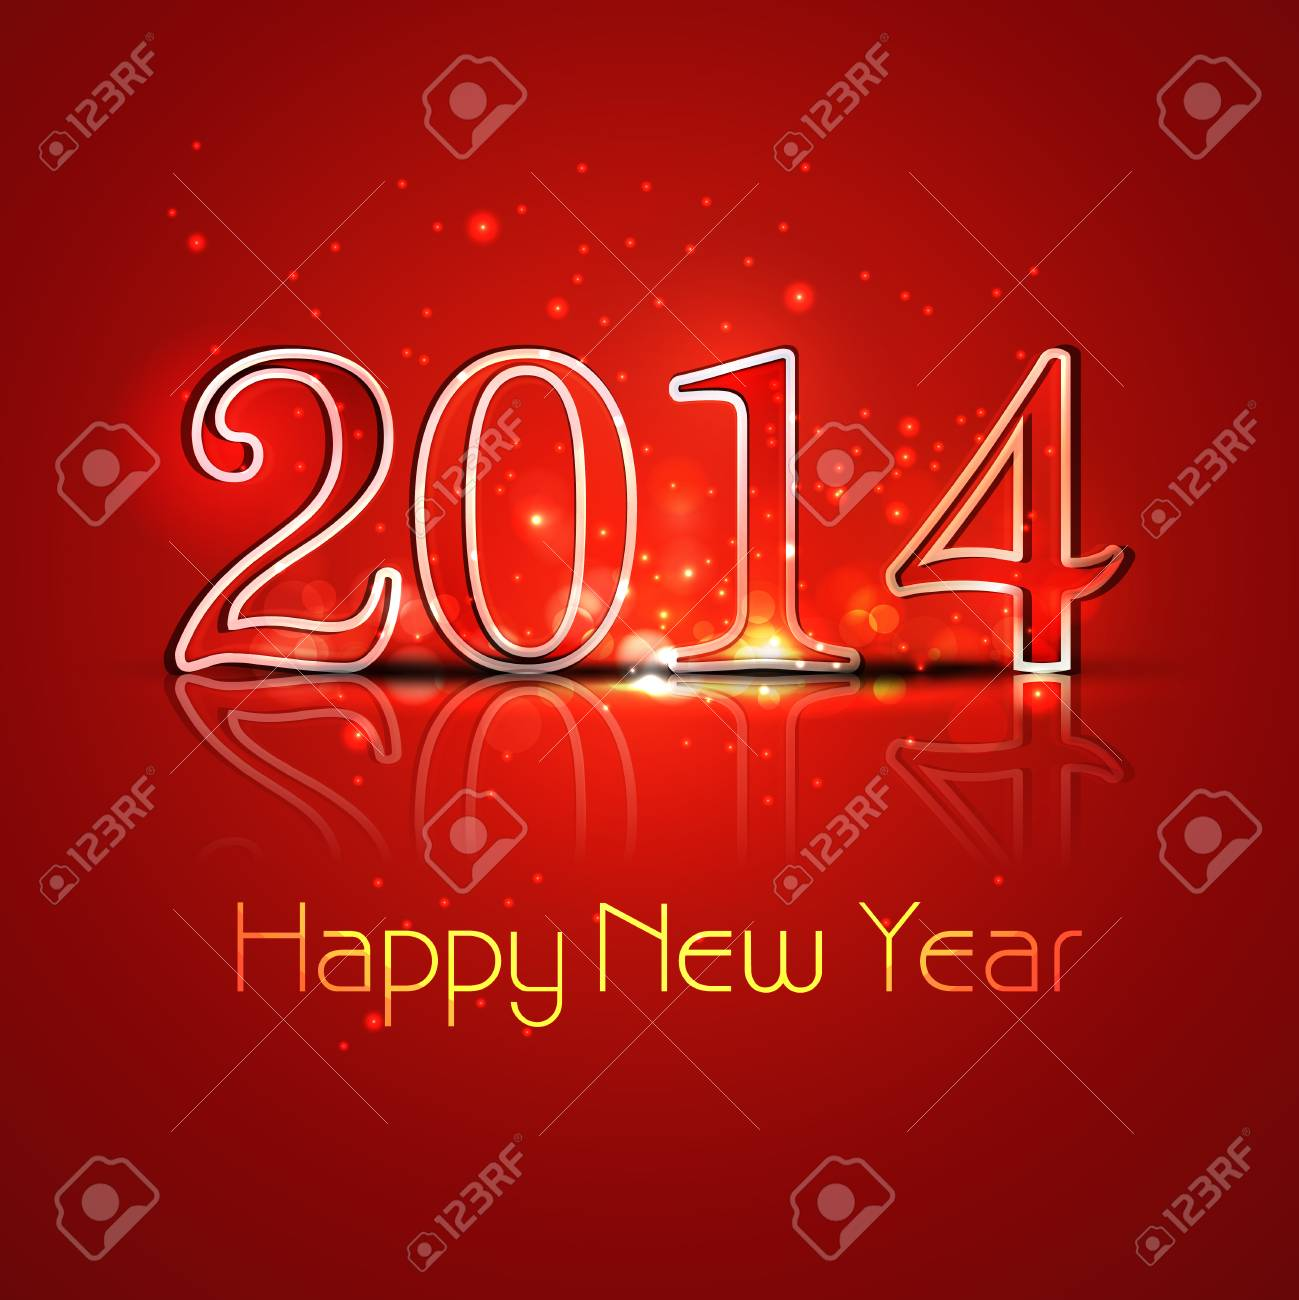 New year 2014 reflection colorful stylish holiday greeting card new year 2014 reflection colorful stylish holiday greeting card design stock vector 24640003 m4hsunfo